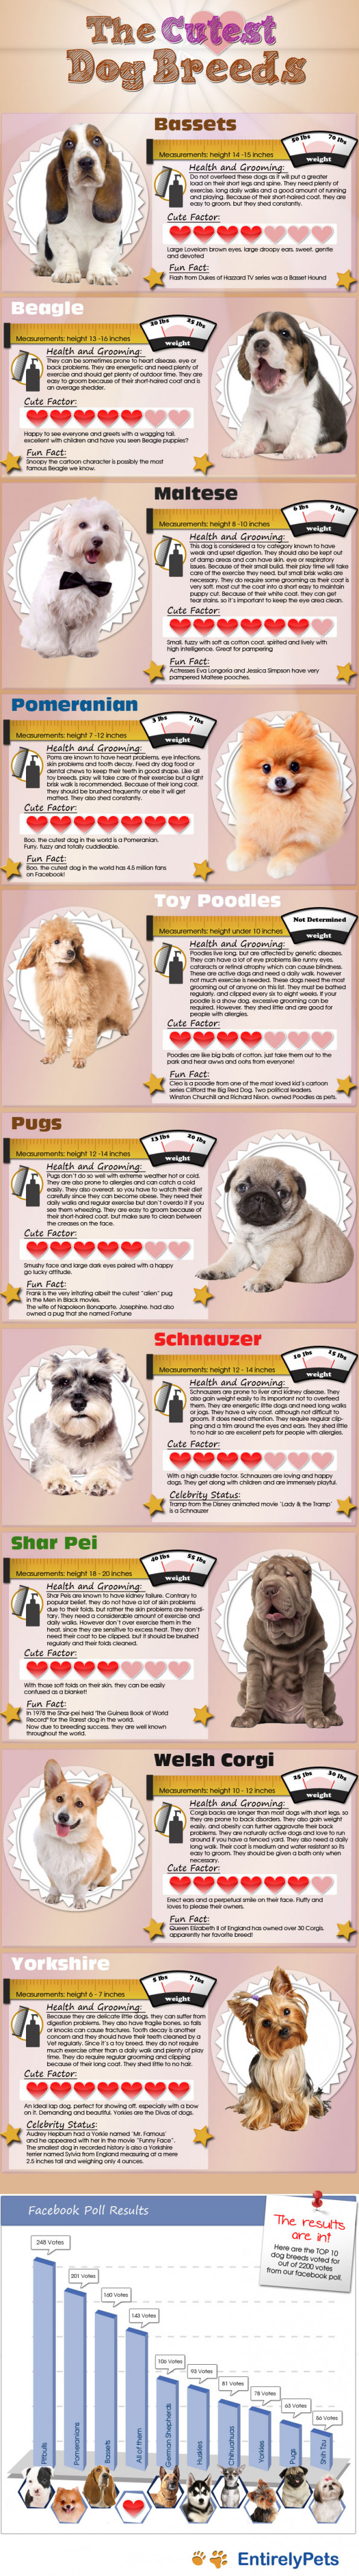 The Cutest Dog Breeds Infographic